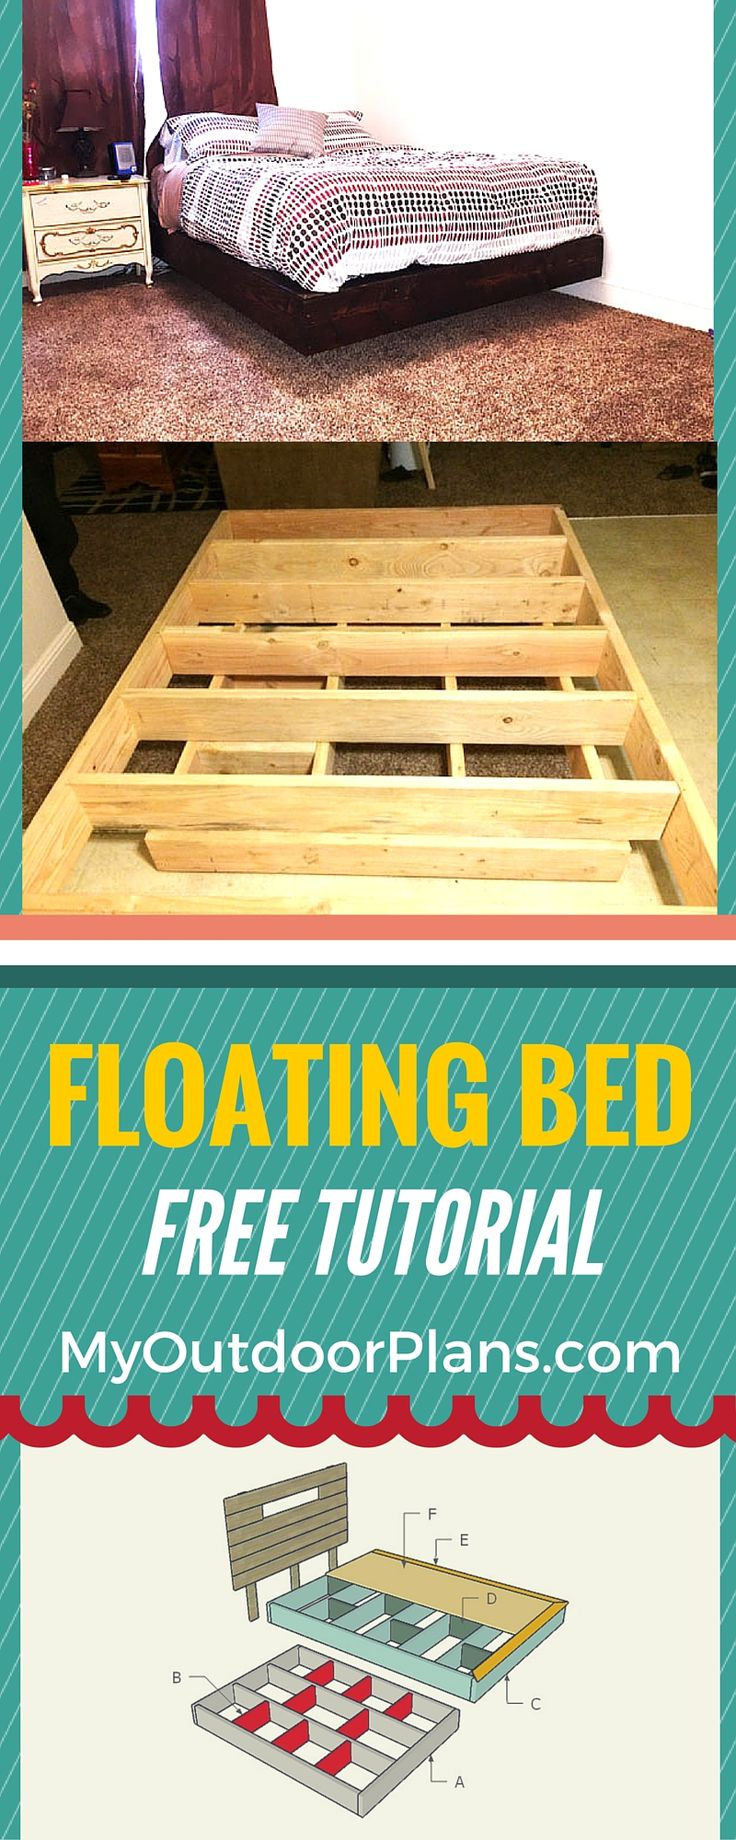 Outdoor hammock bed by the floating bed co - How To Build A Floating Bed Step By Step Plans For You To Build A